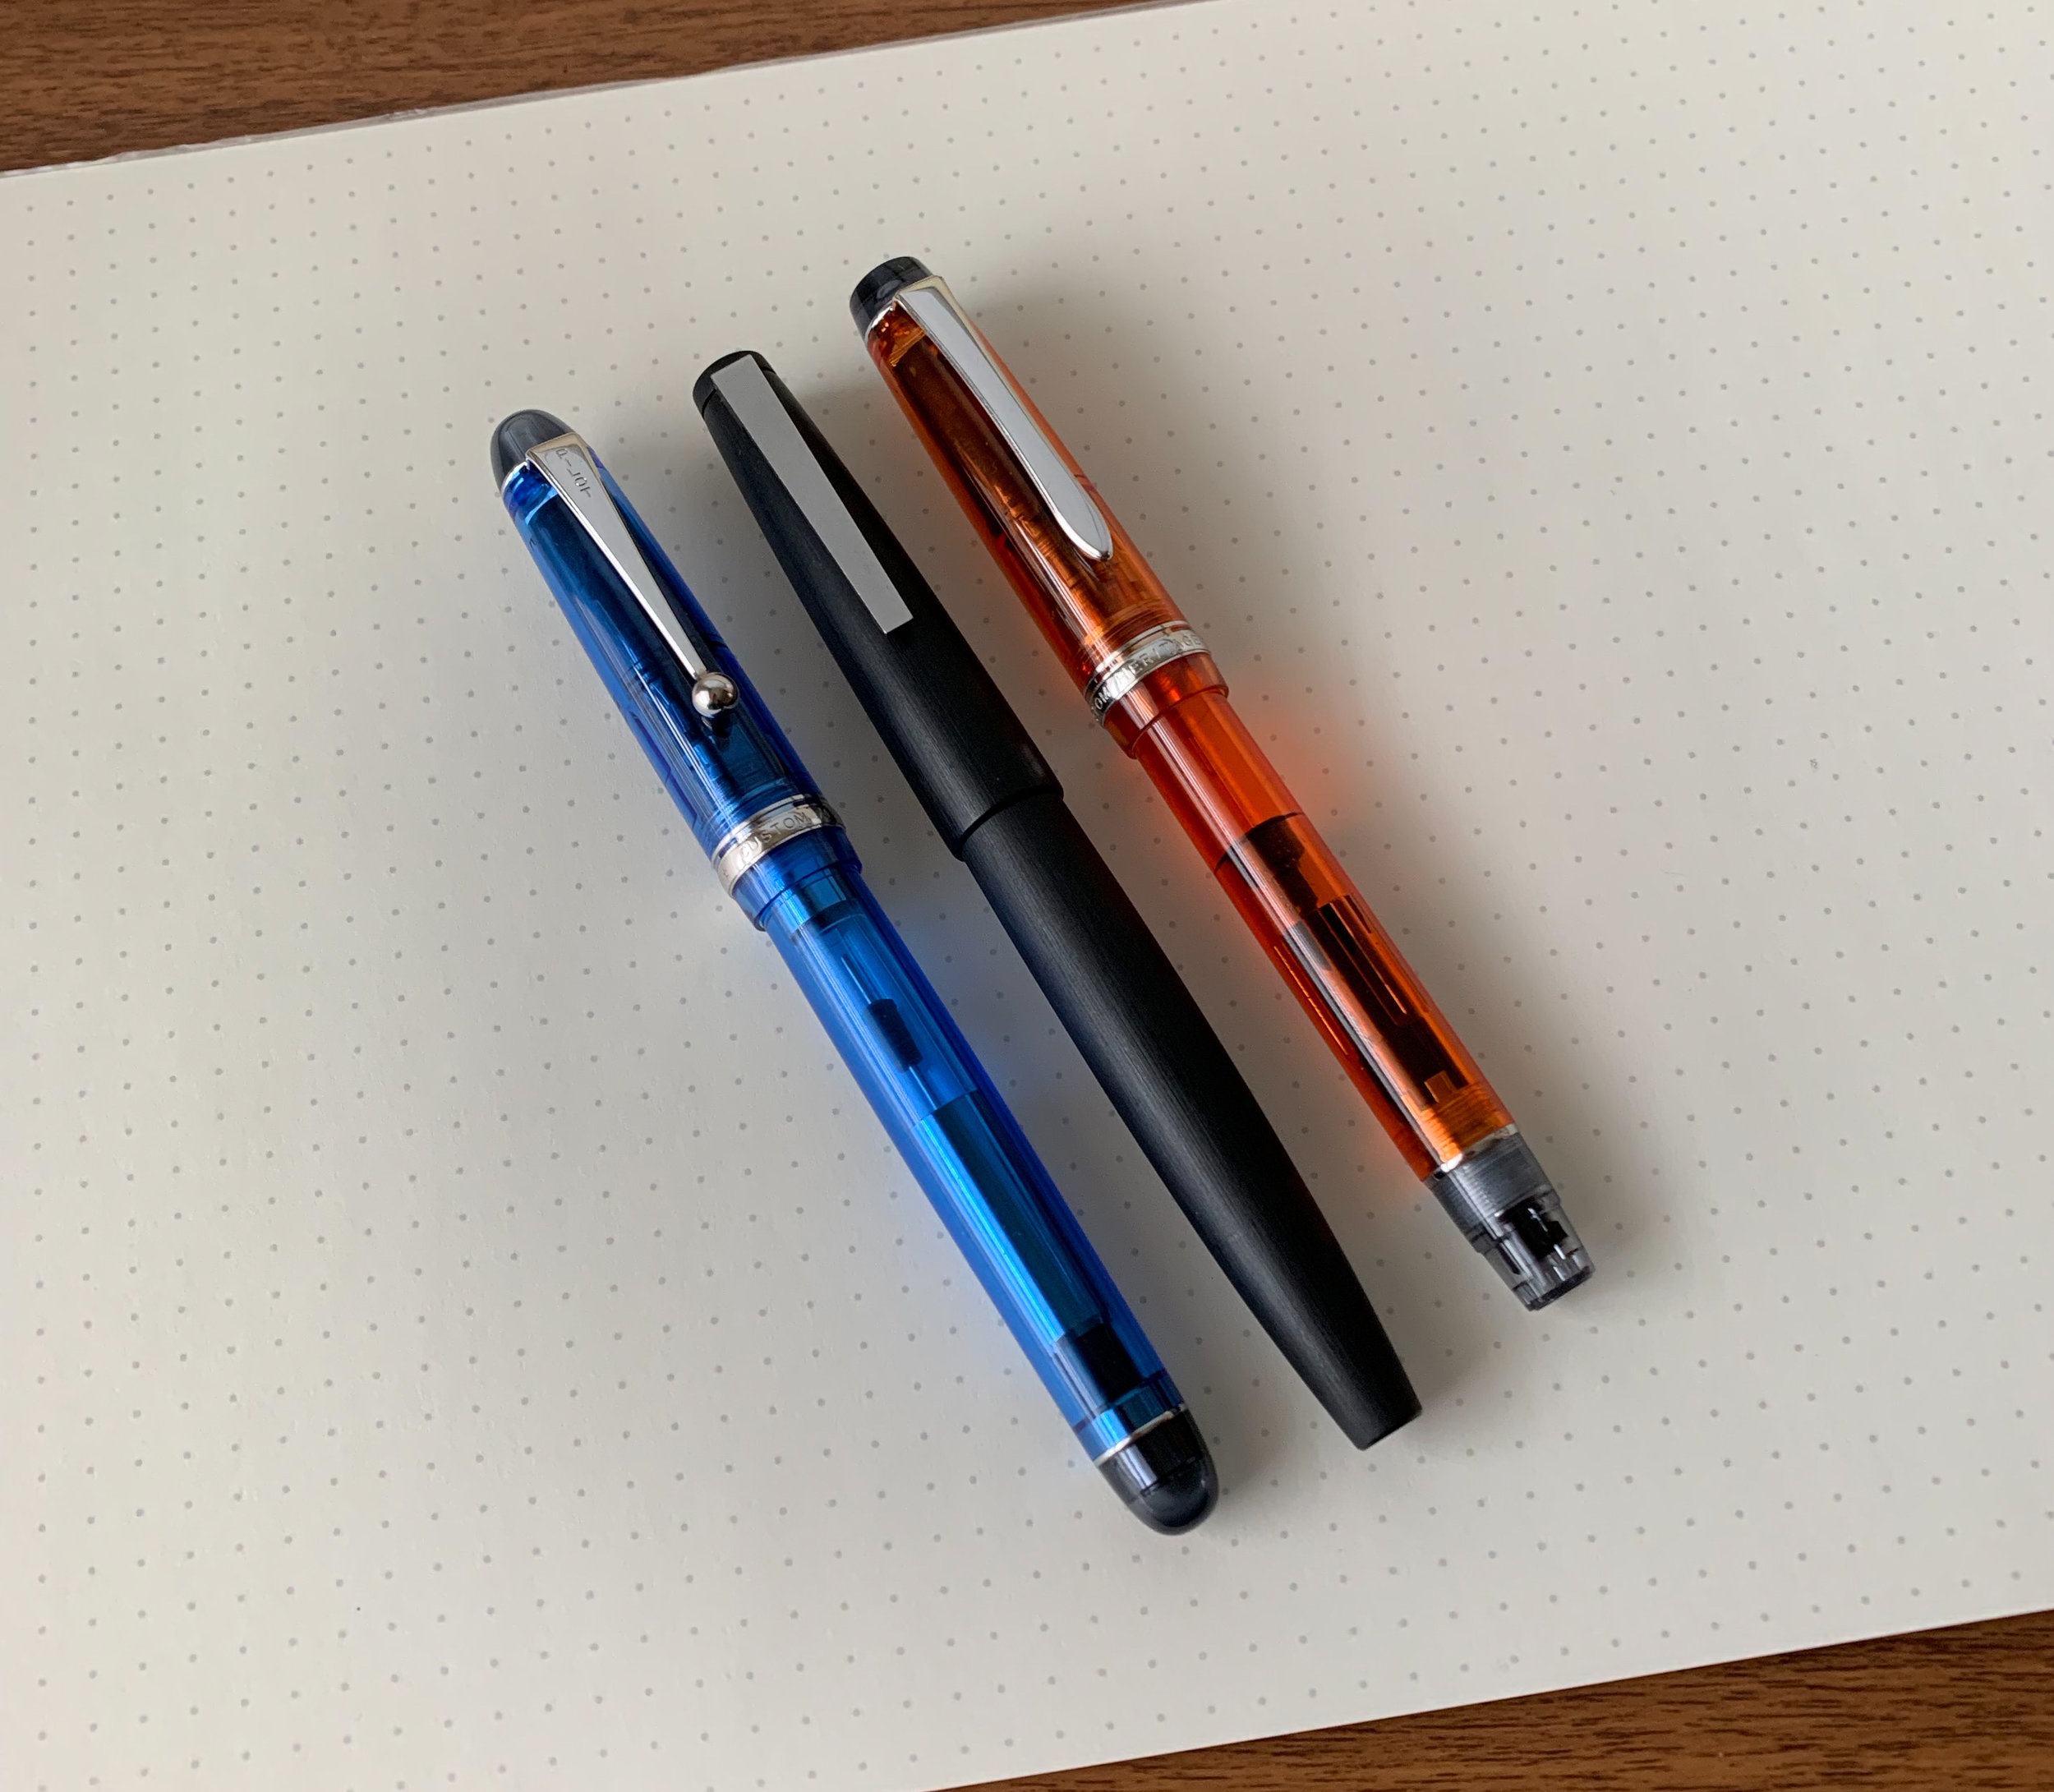 Piston fillers or cartridge-converters? Again, you have multiple options, and the best choice for a daily writer depends on how often you need to refill, and the most convenient option for refilling on the go. From left, the Pilot Custom 74, Lamy 2000, and Pilot Custom Heritage.